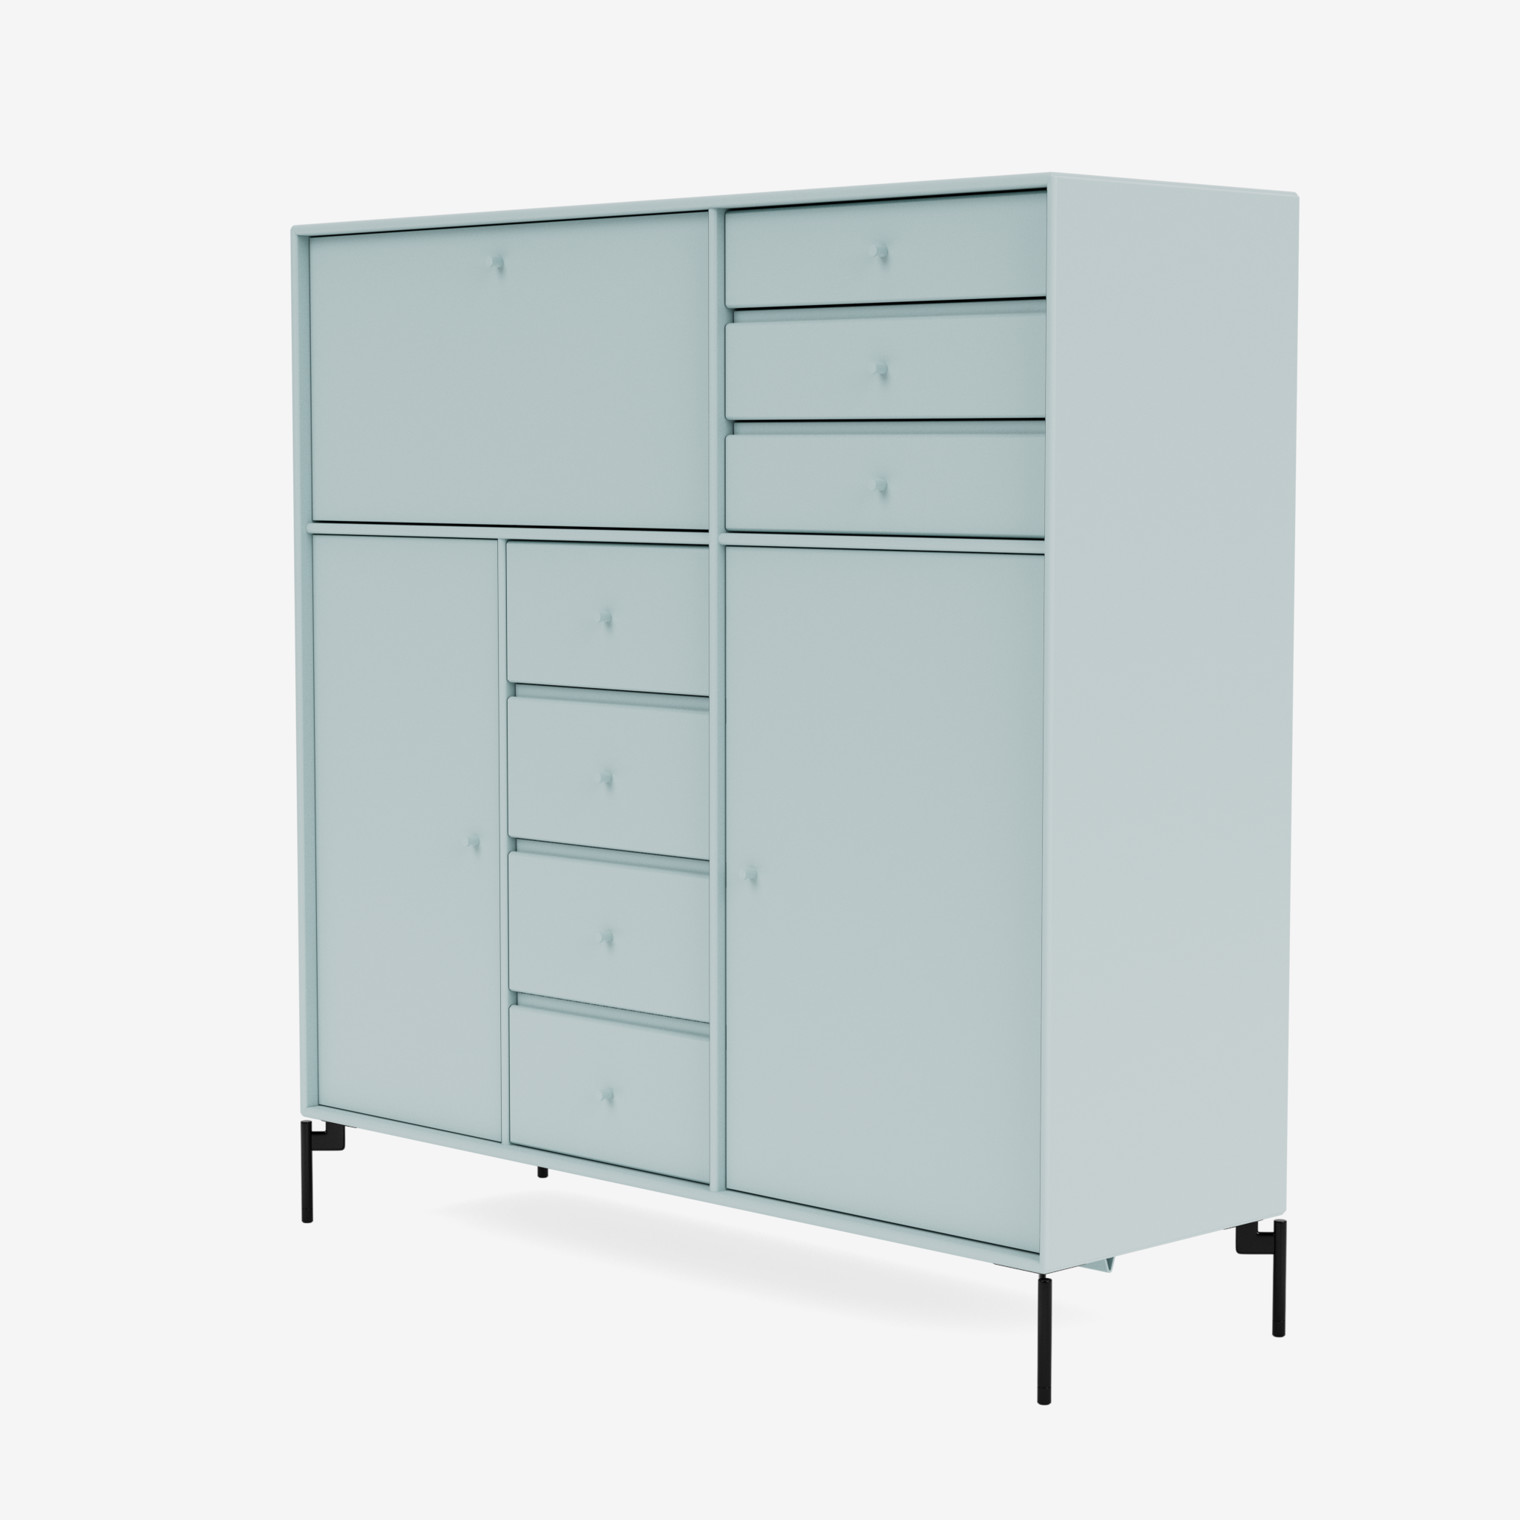 Montana Mega 201802 - highboard